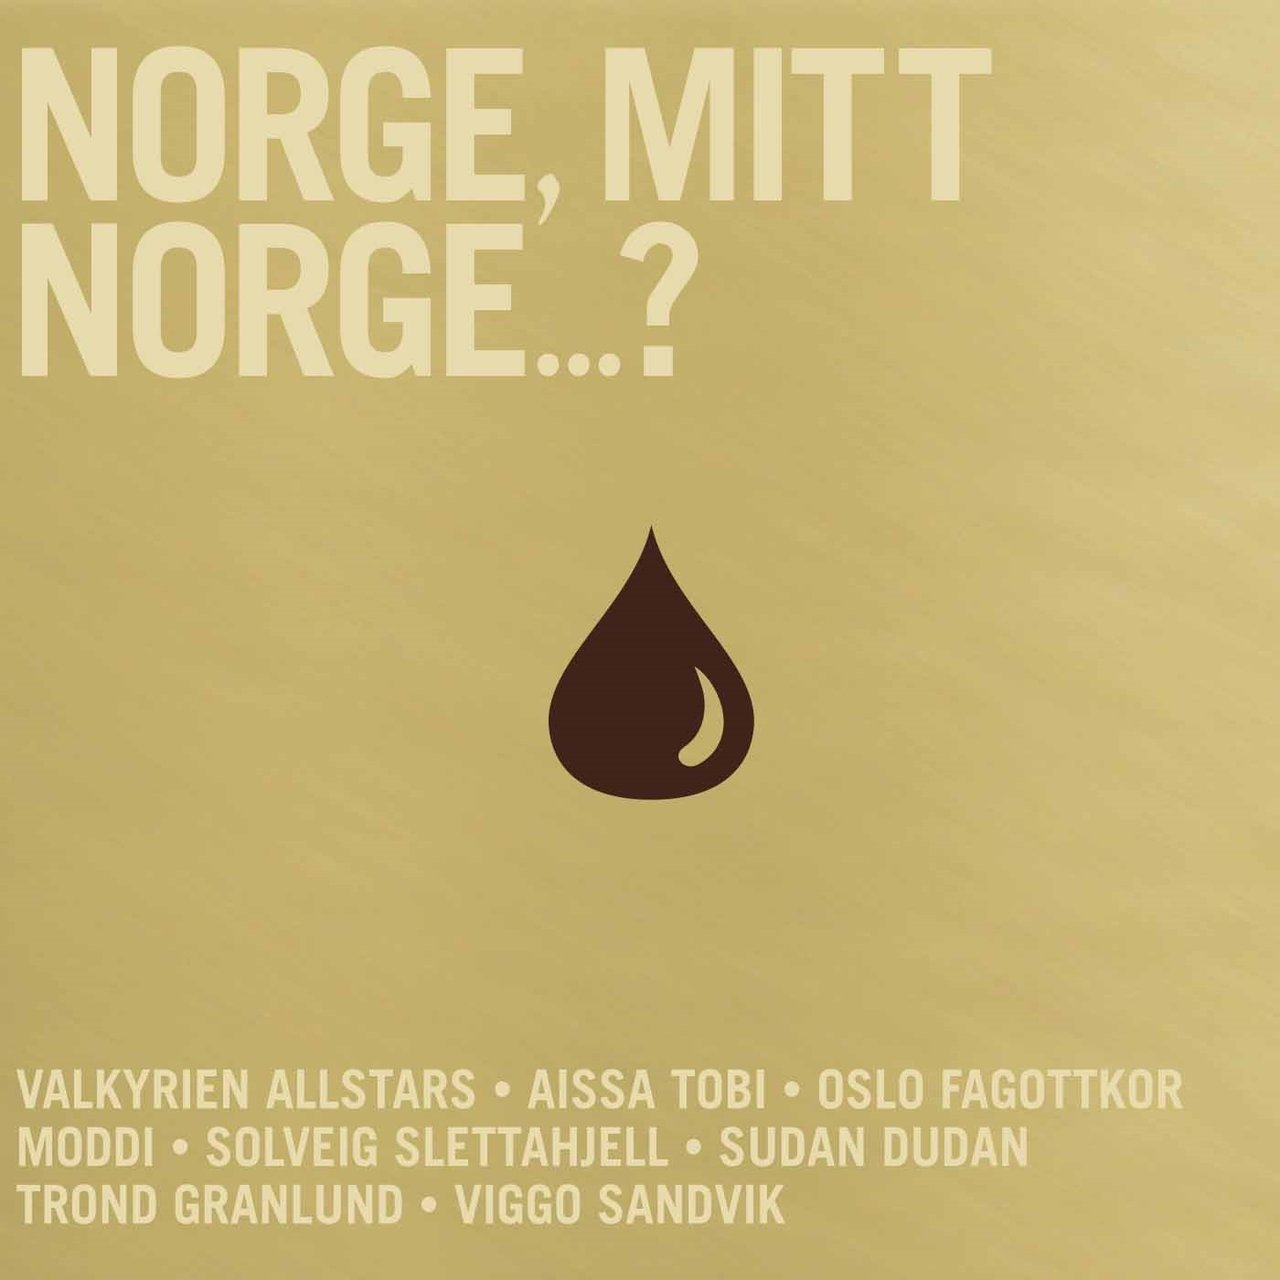 Norge, mitt Norge...?